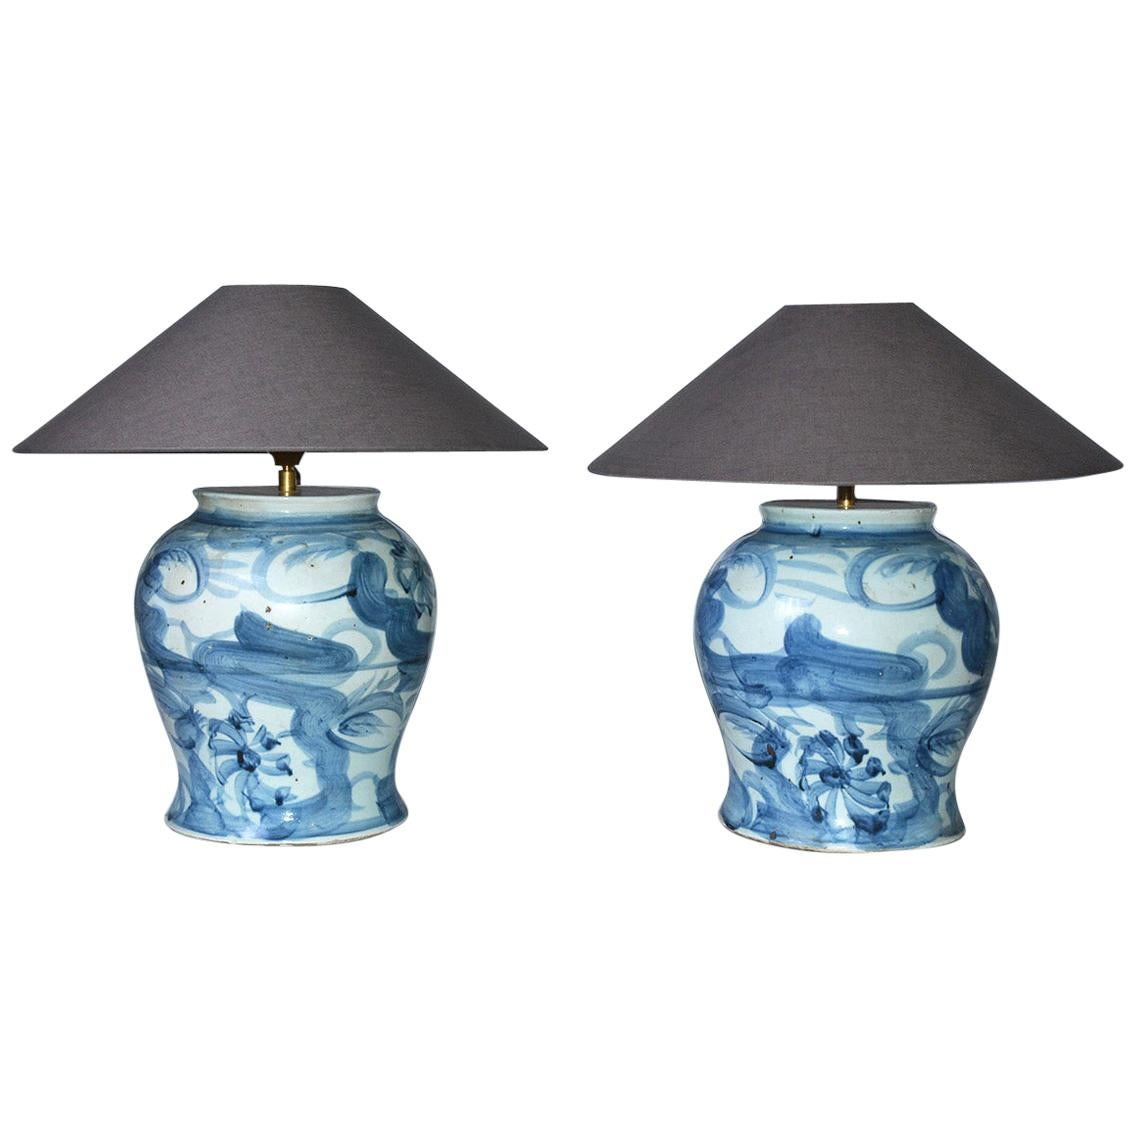 chinese export table lamps 206 for sale at 1stdibs rh 1stdibs com